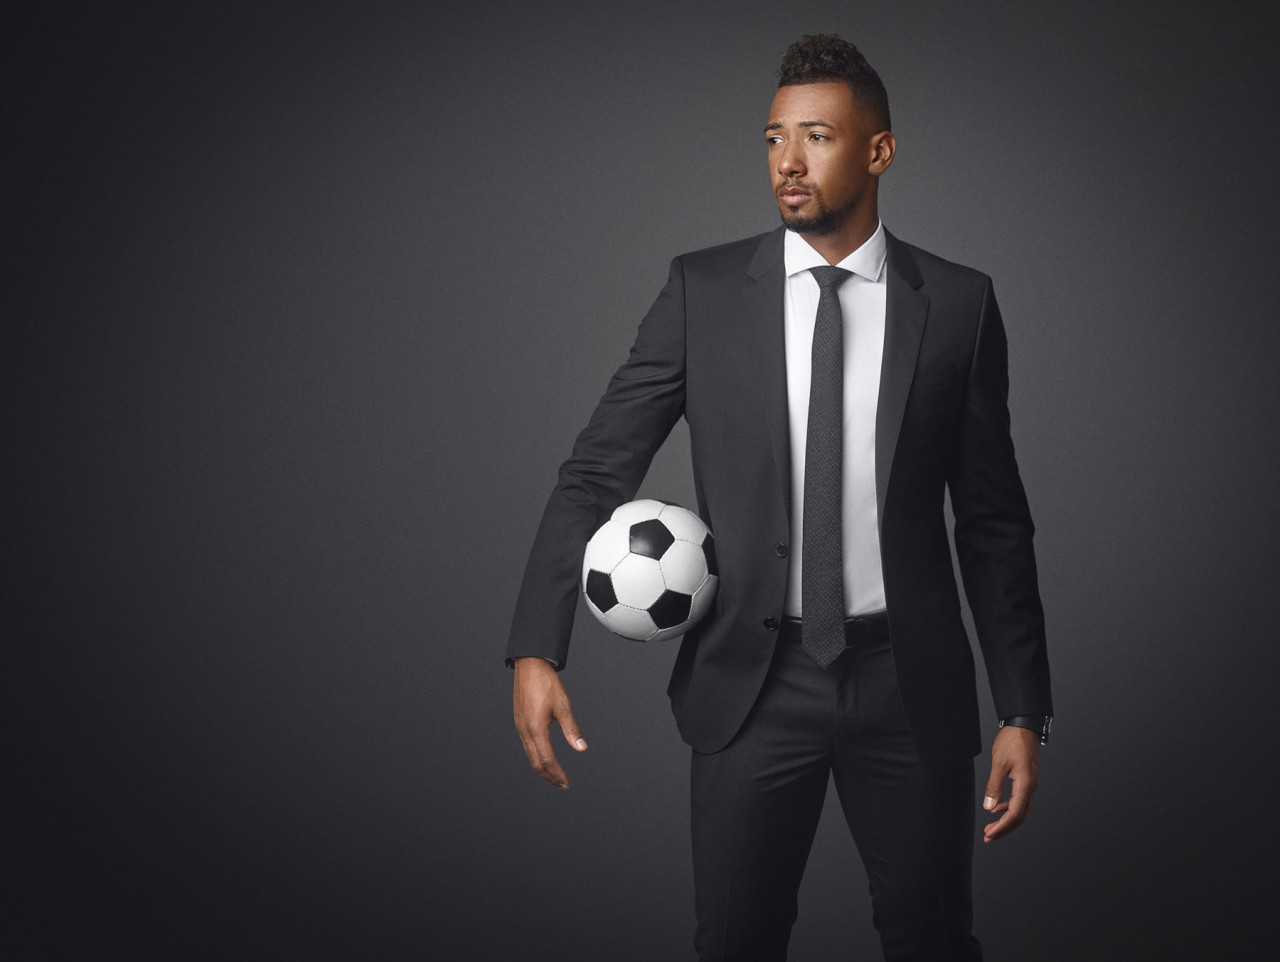 Malte Frank | Postproduction JEROME BOATENG